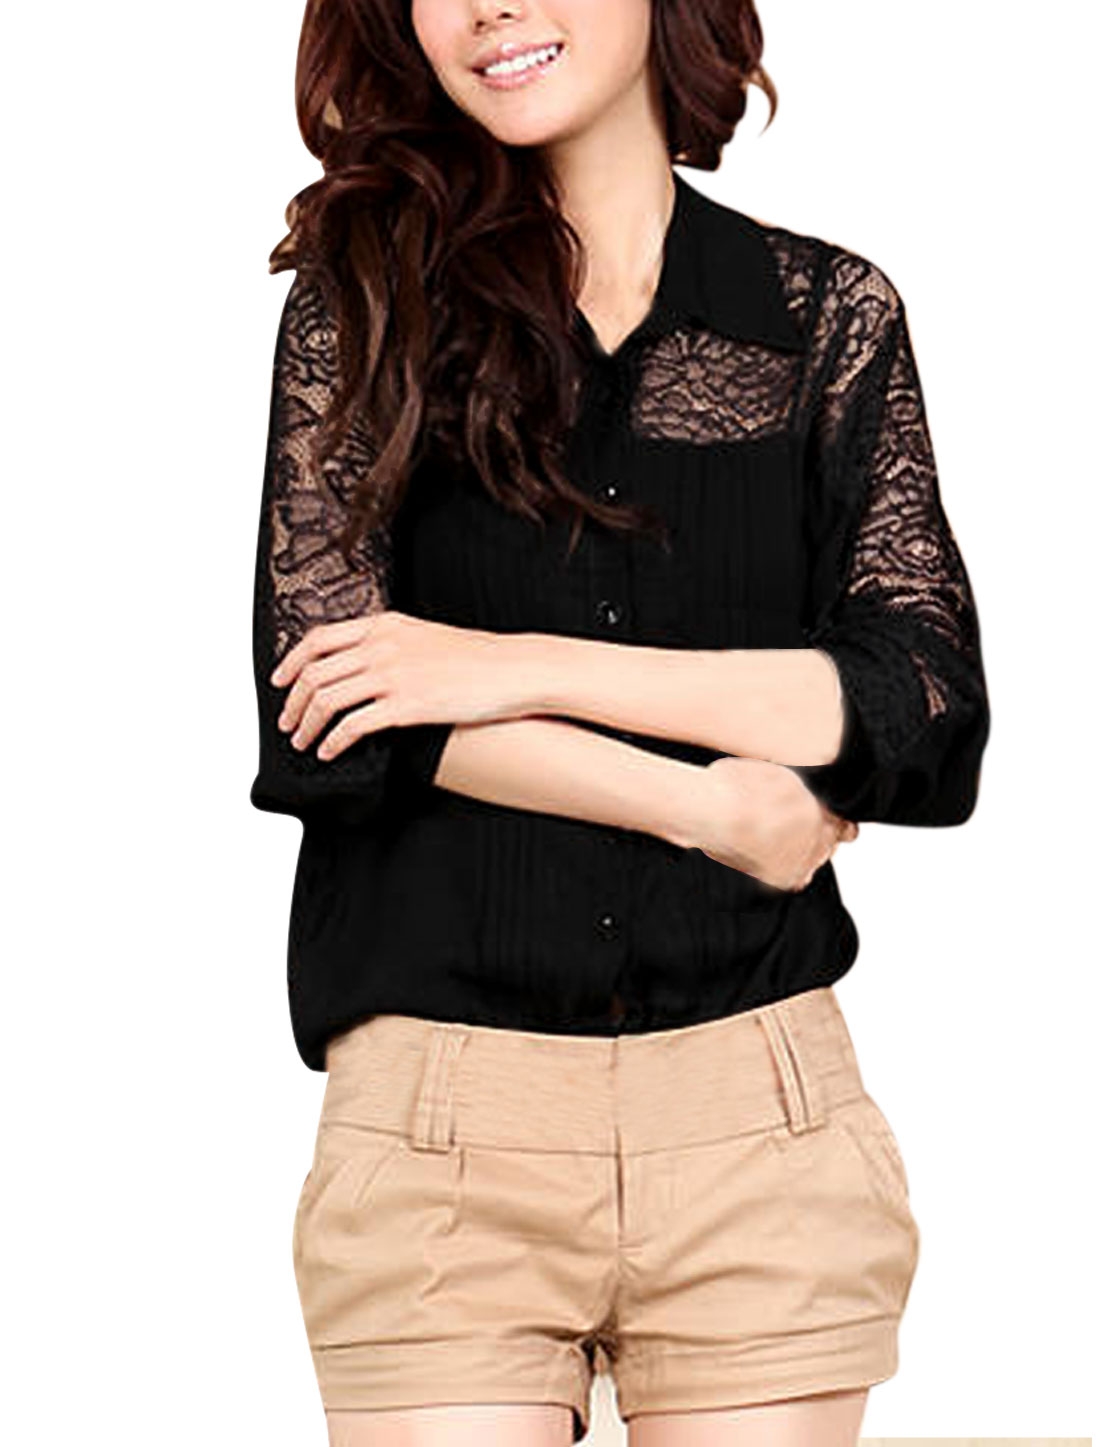 Women Point Collar Sheer Embroidered Lace Panel Chiffon Shirt Black S